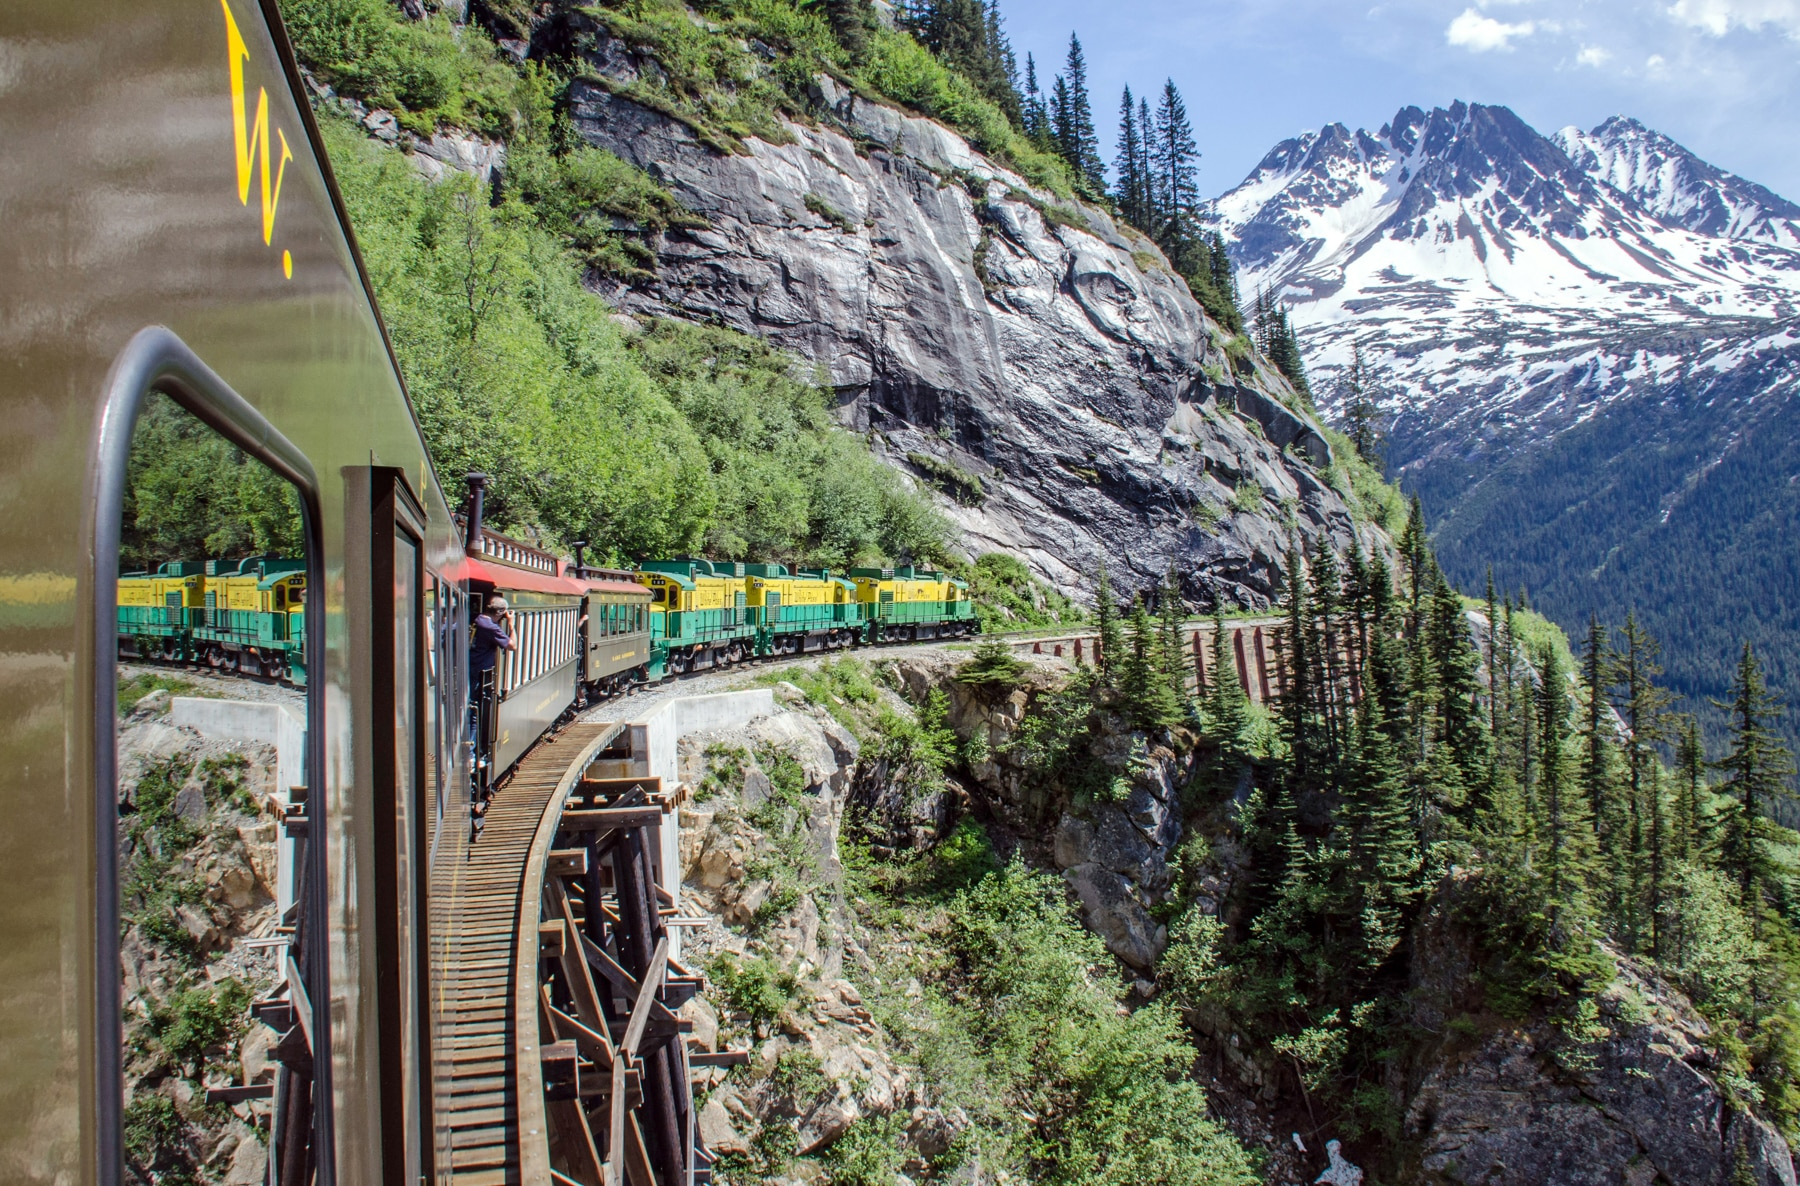 Train traveling along steep Alaska mountainside, with snowy mountain in background (© Shutterstock)